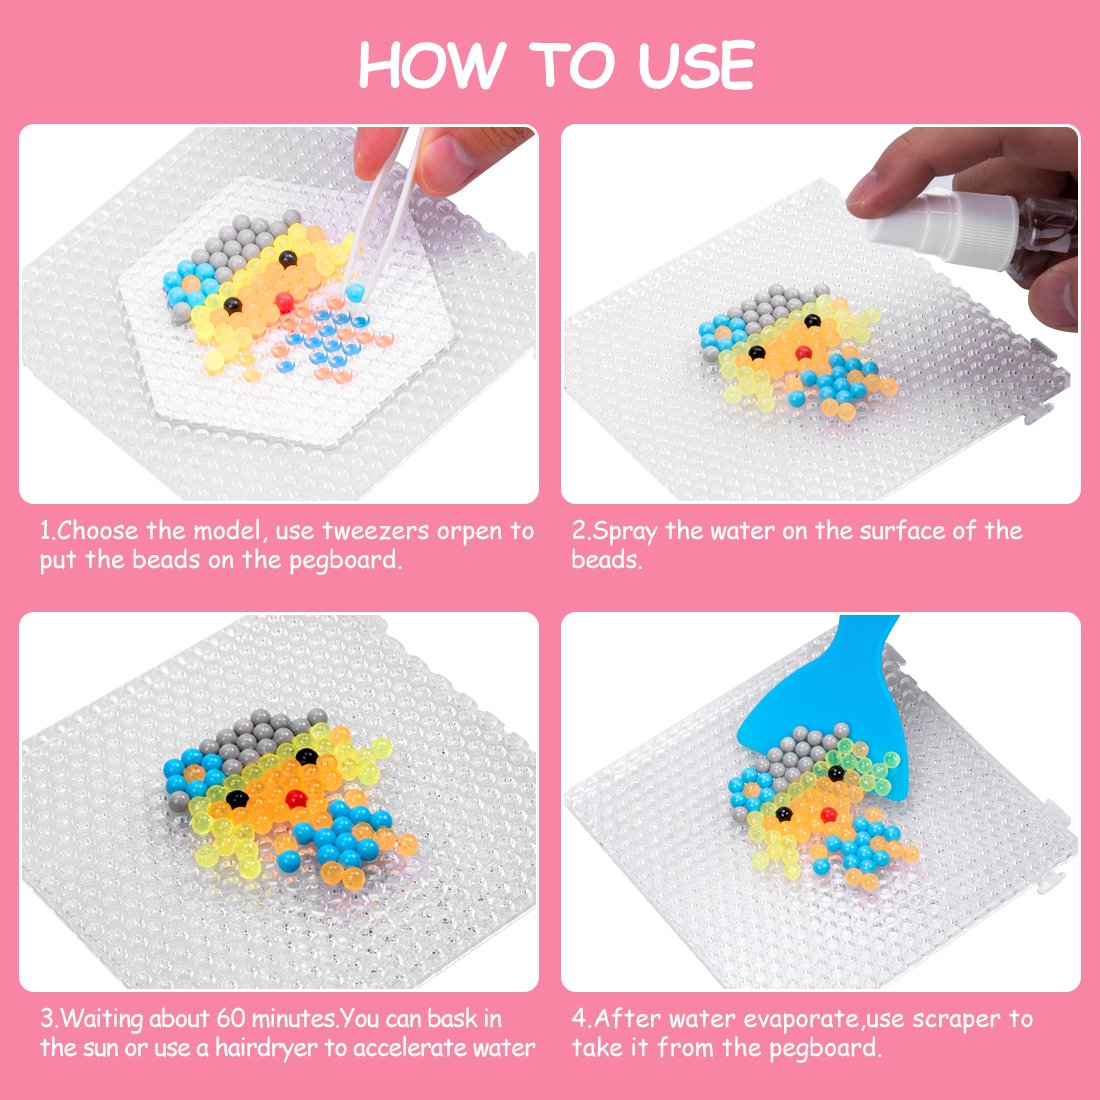 GARUNK Fuse Beads Refill, 24 Colors Water Spray Craft Beads Set Compatible Aquabeads Beados Art Crafts Toys Kids Beginners 3200 Classic Jewel Beads DIY Pegboard Kits by GARUNK (Image #3)